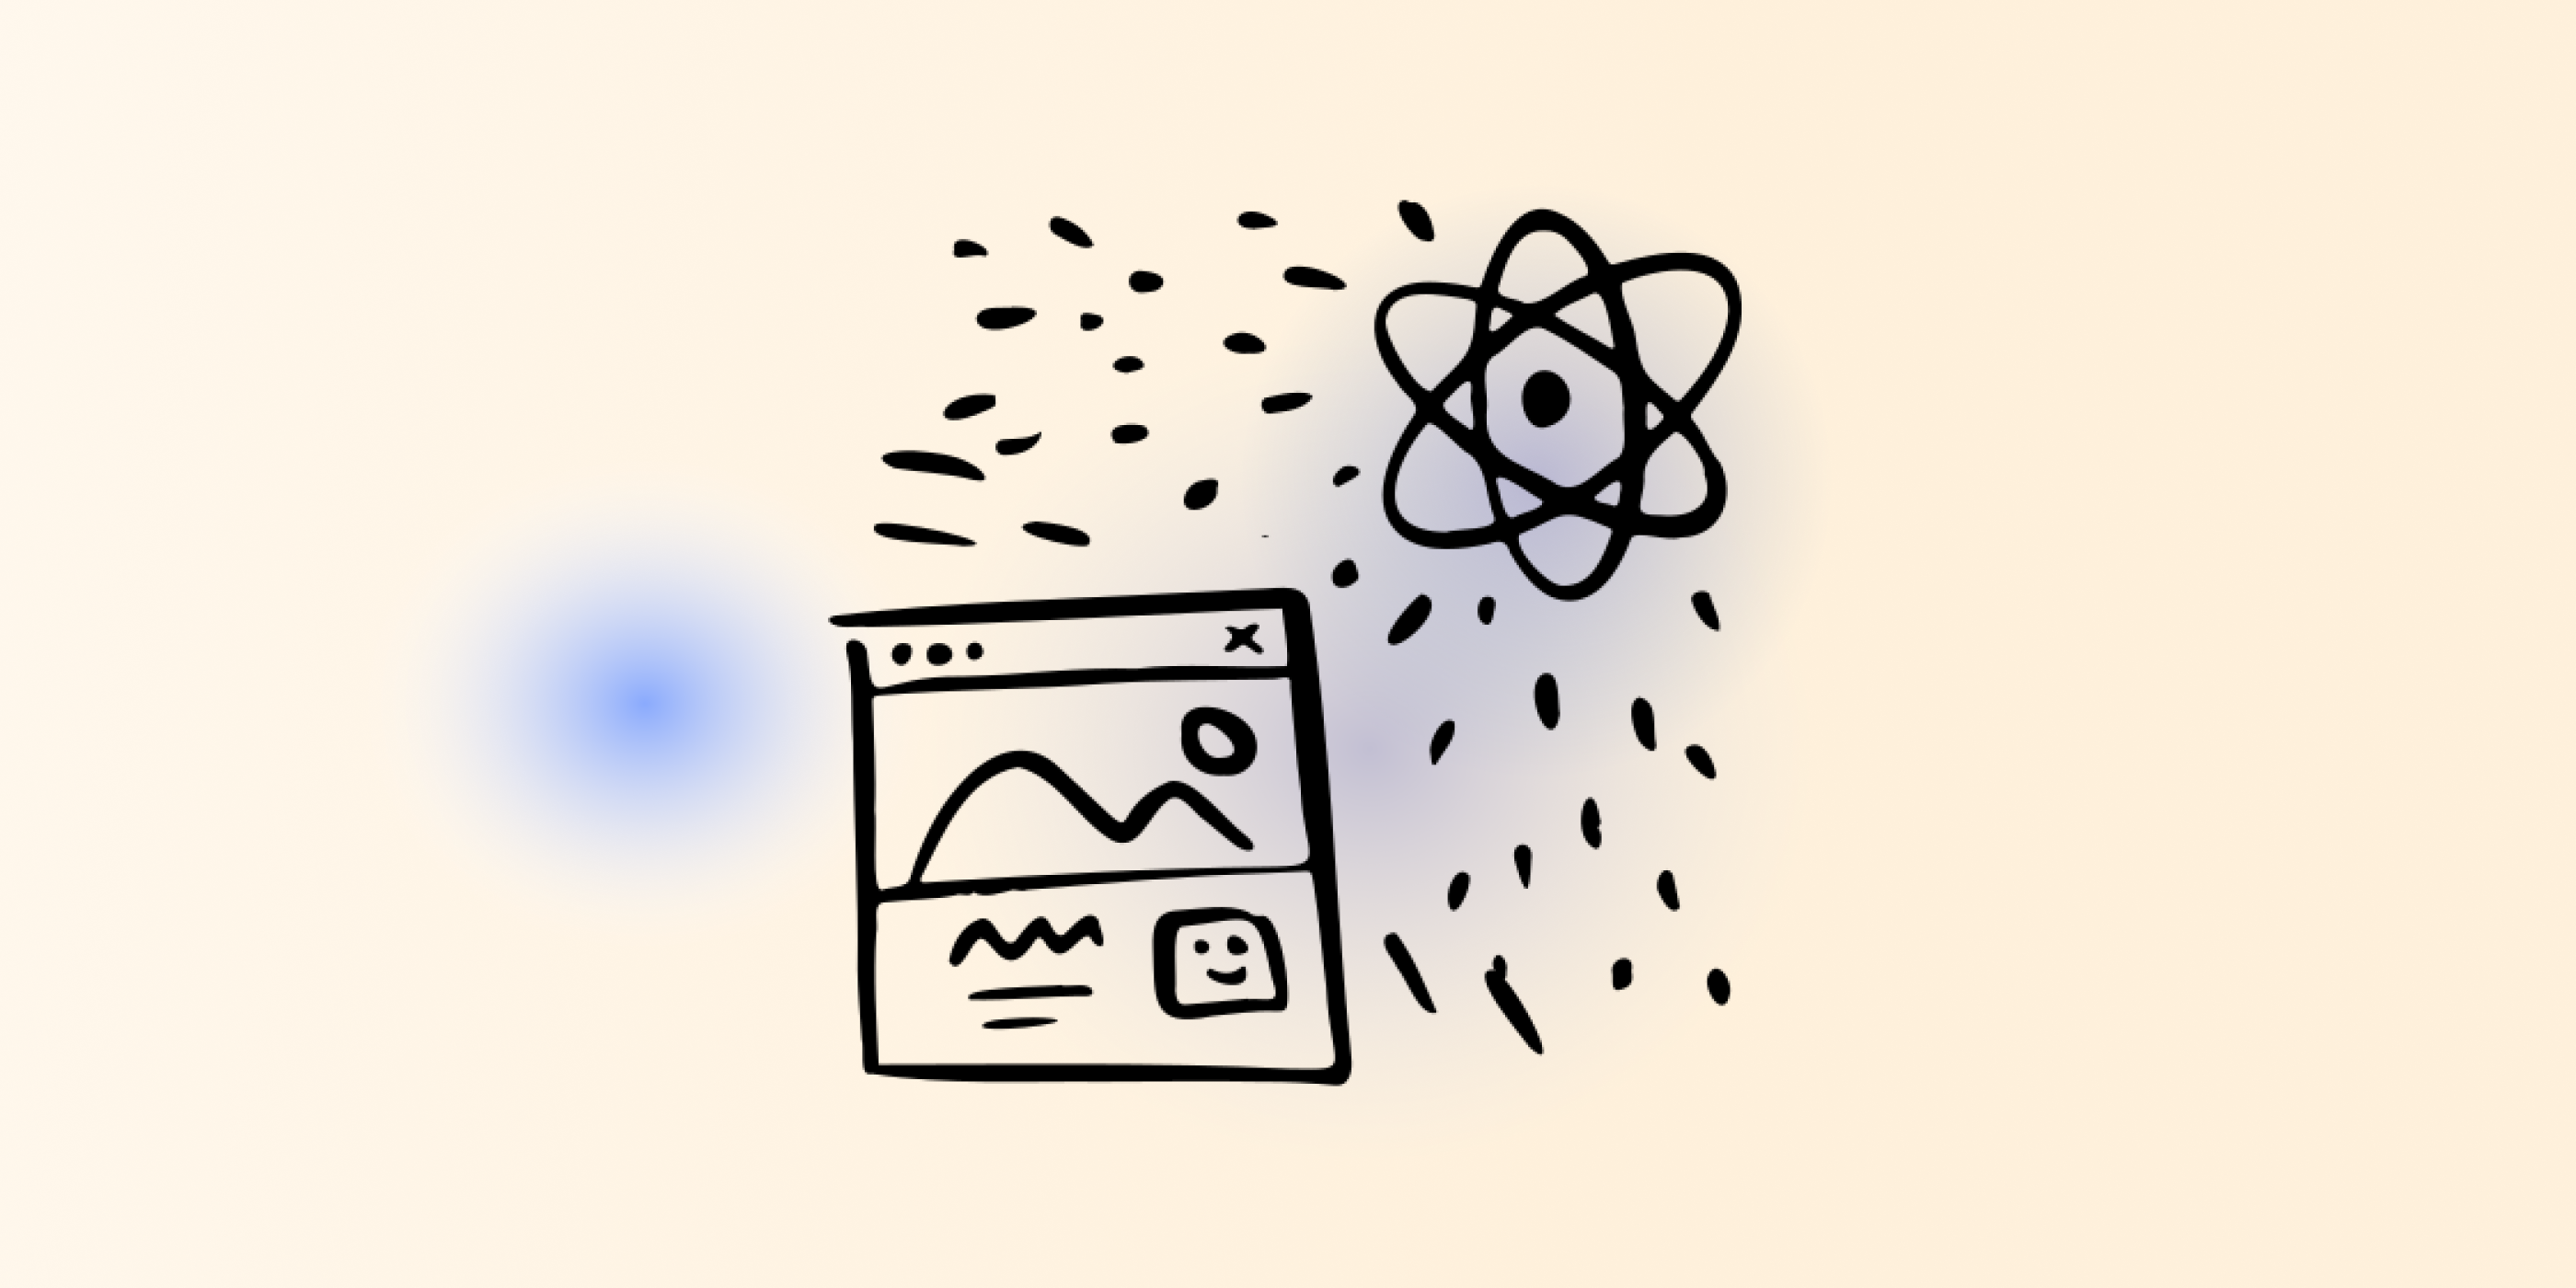 Website wireframe and picture of an atom